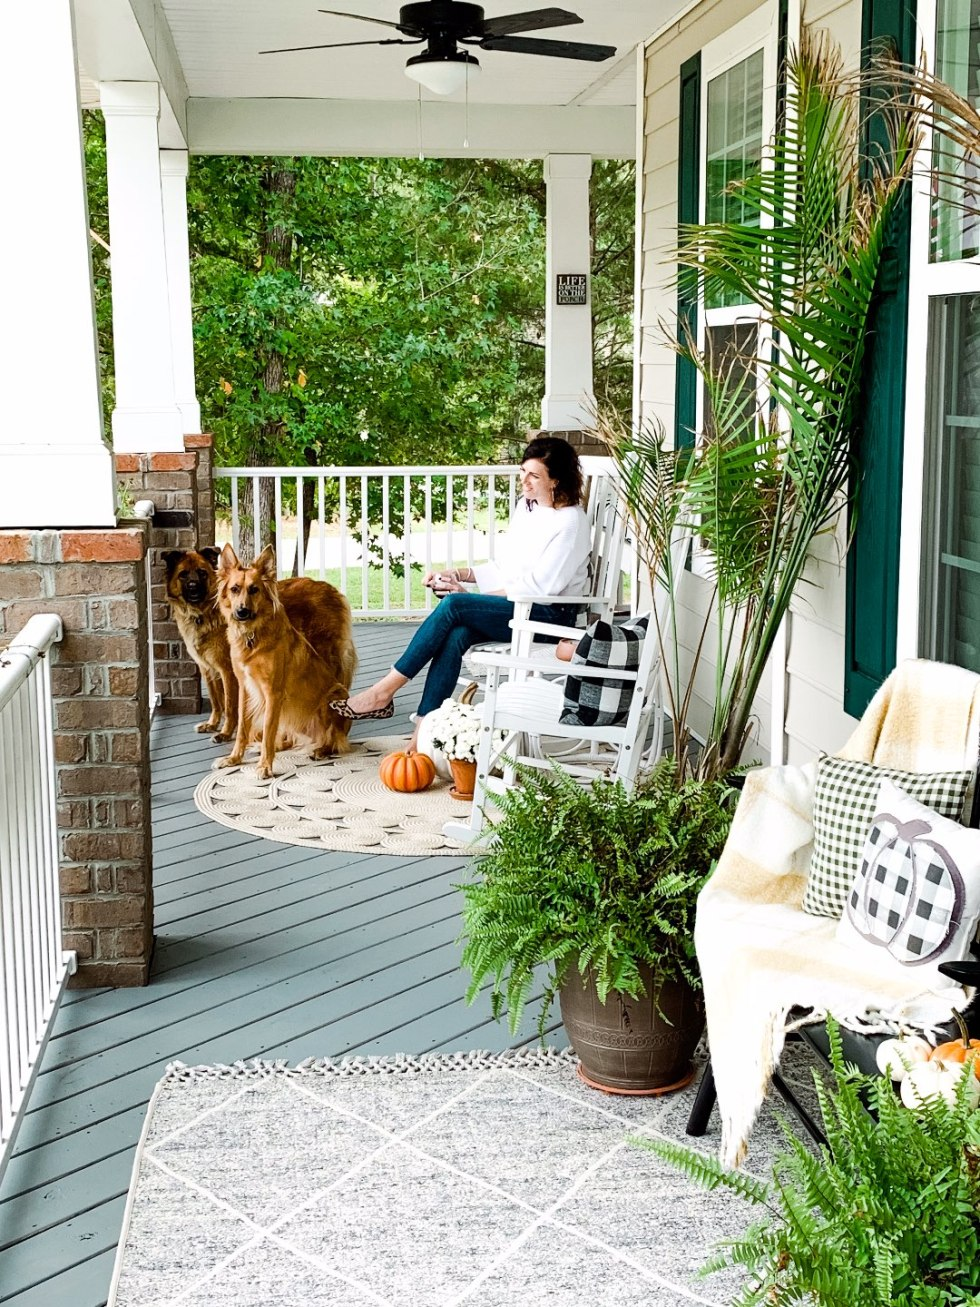 How to Set Healthy Boundaries with Friends: 8 Essential Tips - I'm Fixin' To - @mbg0112 | How to Set Healthy Boundaries with Friends: 8 Essential Tips by popular NC life and style blog, I'm Fixin' To: image of a woman sitting on her front porch with her two dogs.